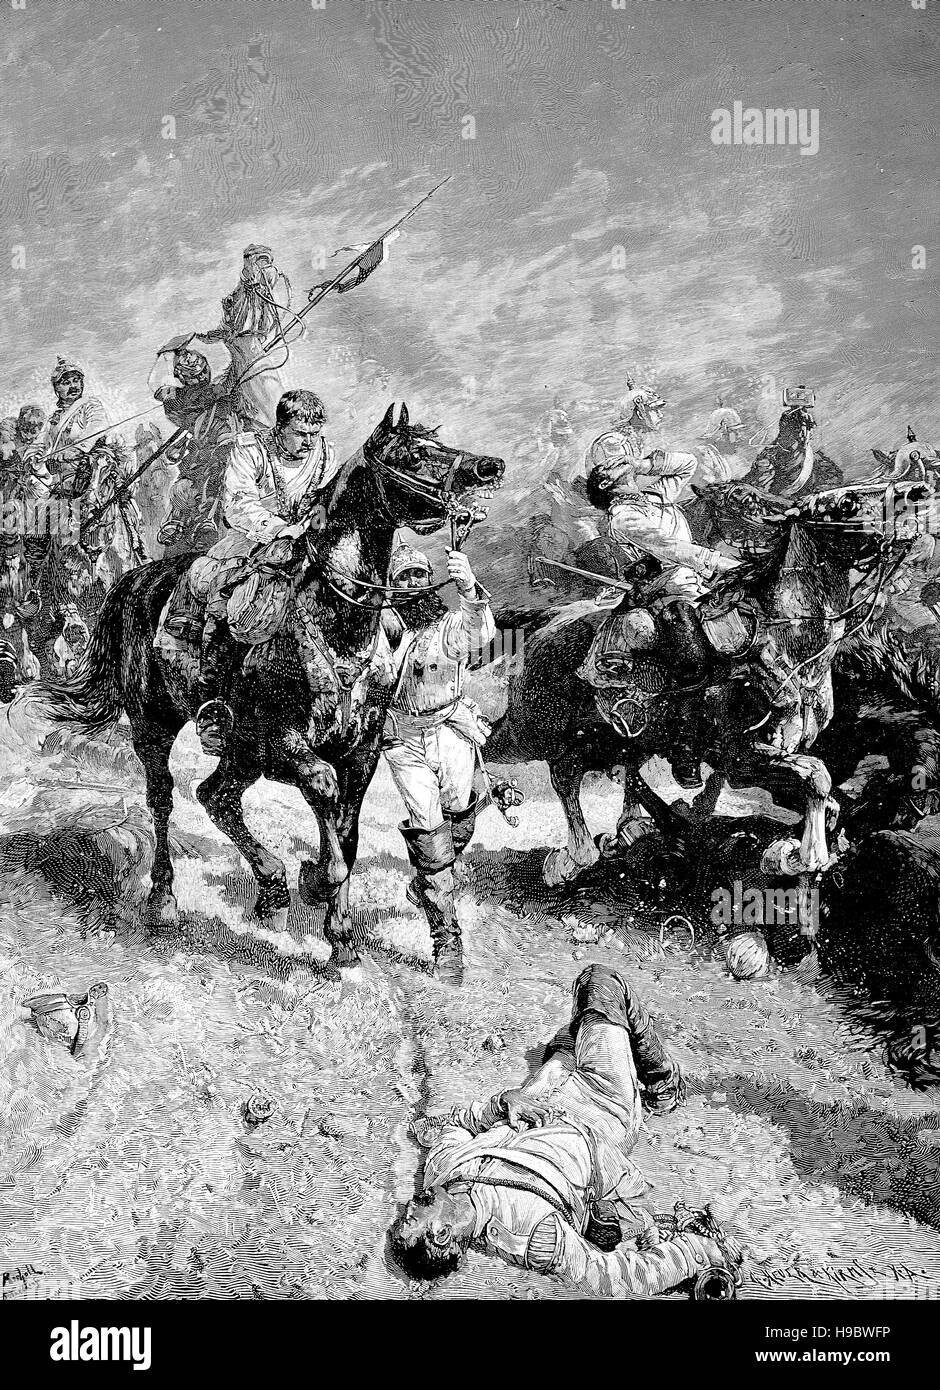 Franco-Prussian War, 1870, the Charge of the Light Brigade at Bionville, France, historical illustration - Stock Image